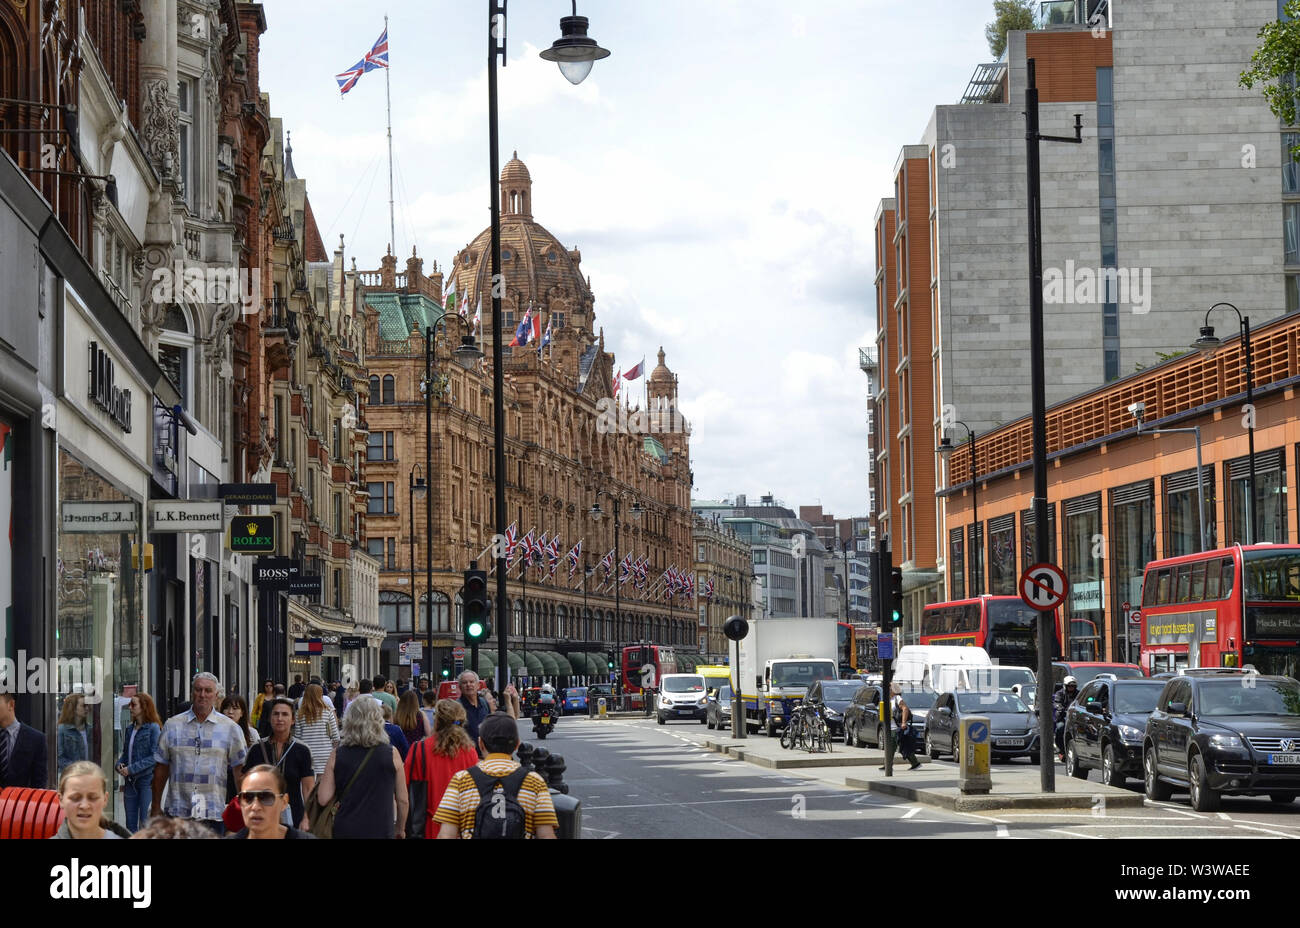 London, United Kingdom, June 2018. The harrods warehouses, a reference point for luxury customers. It is a commercial one hundred with an extremely wi - Stock Image